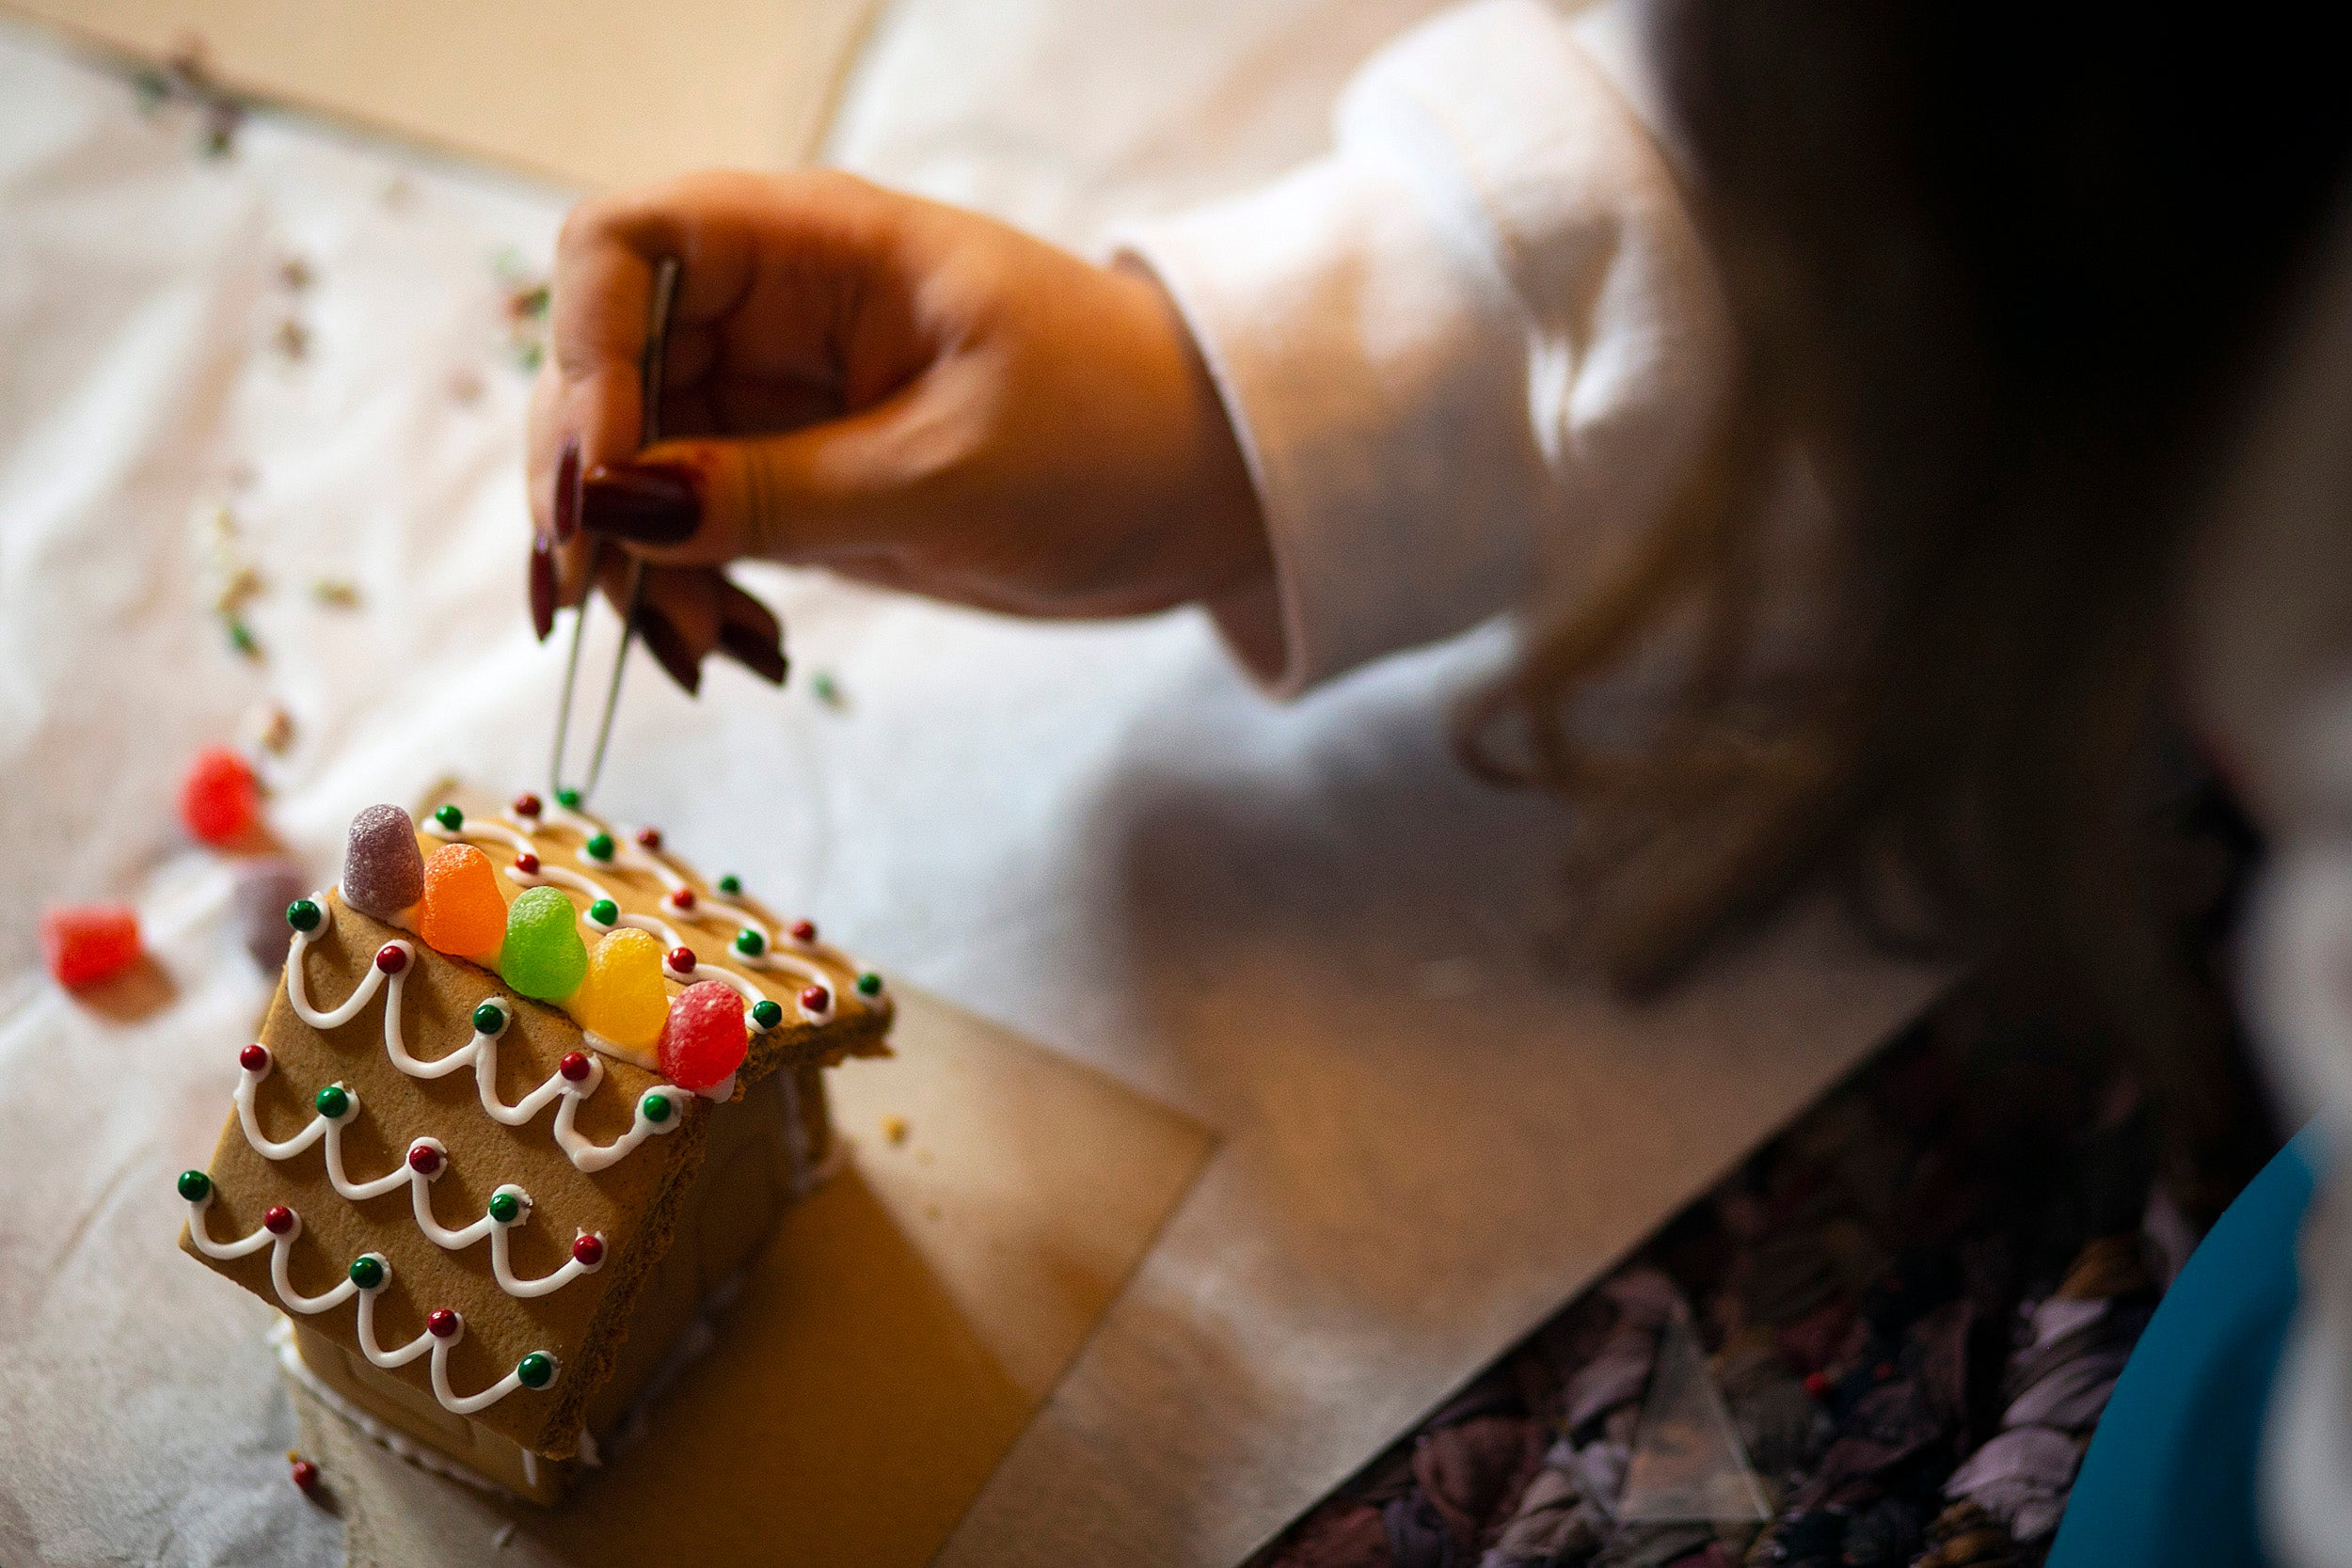 Final touches on a gingerbread house.